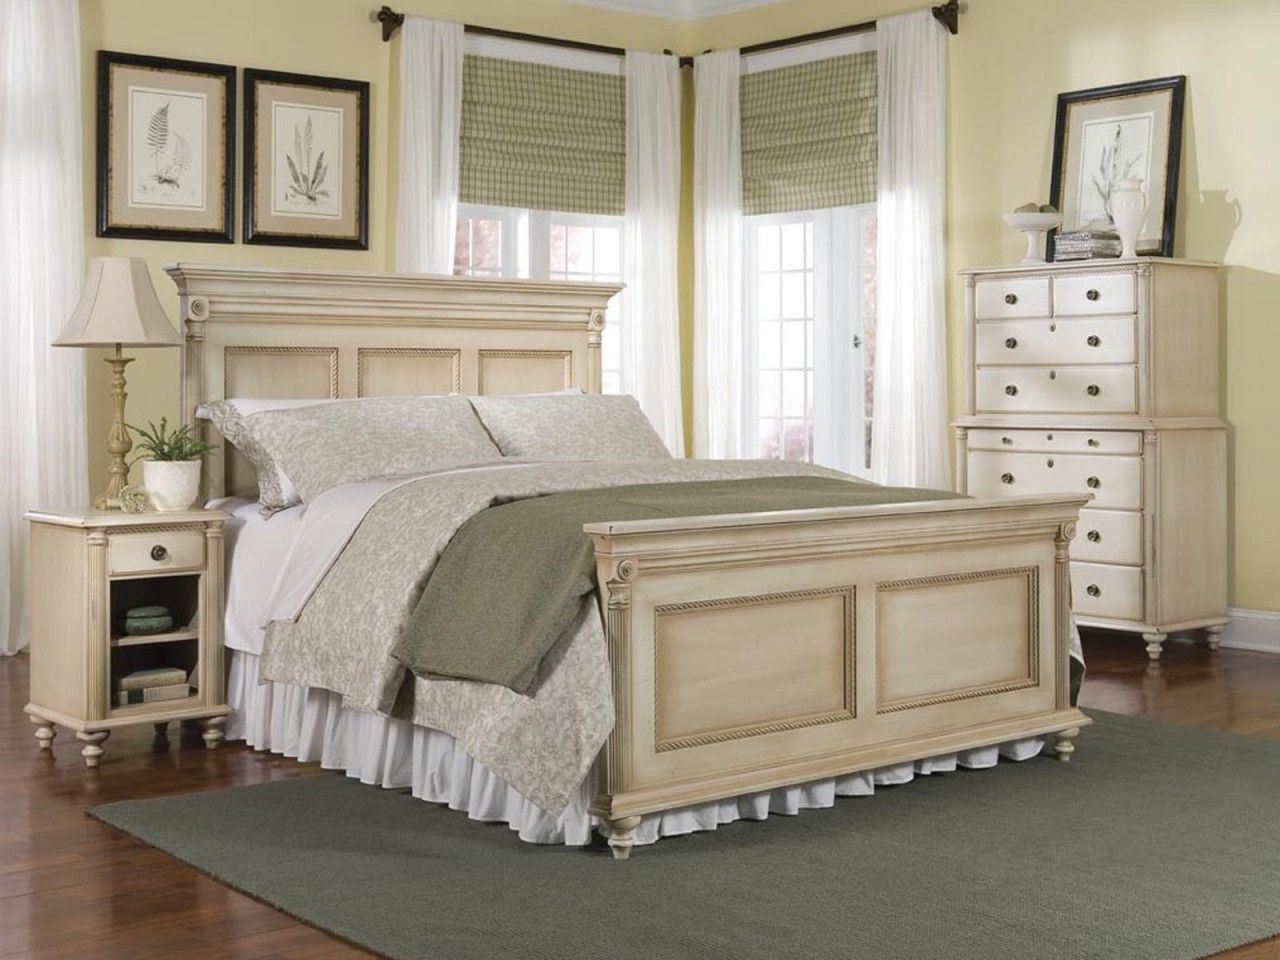 Antique Cream Bedroom Furniture - Diy Modern Furniture Check more at  http://searchfororangecountyhomes - Antique Cream Bedroom Furniture - Diy Modern Furniture Check More